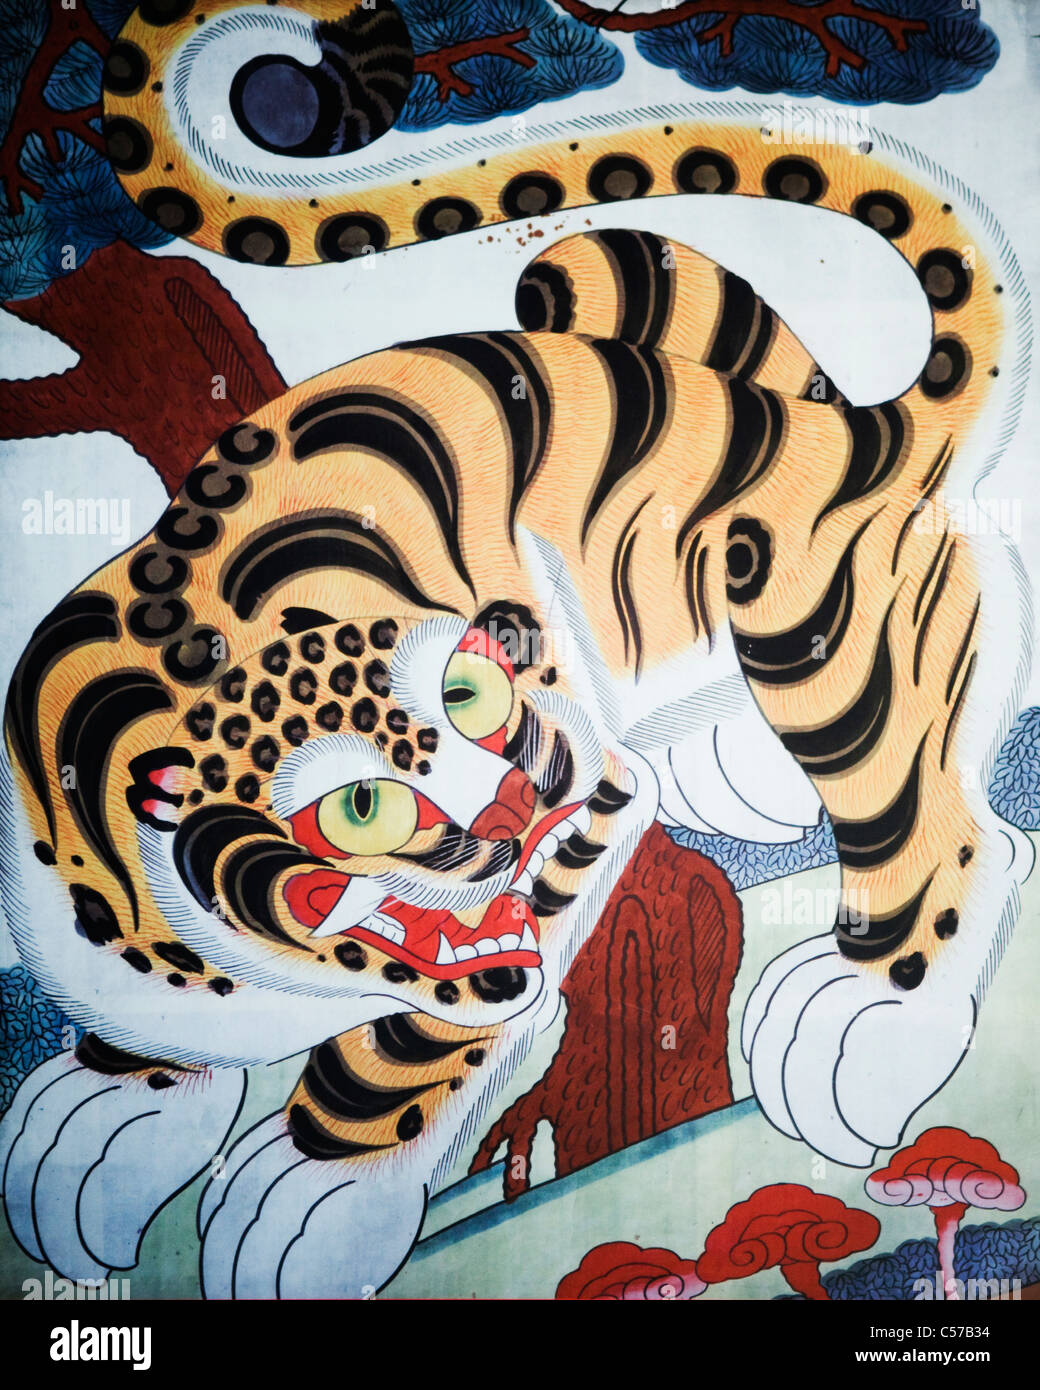 Minhwa korean folk painting showing the tiger symbol of courage minhwa korean folk painting showing the tiger symbol of courage and absolute power in korean culture biocorpaavc